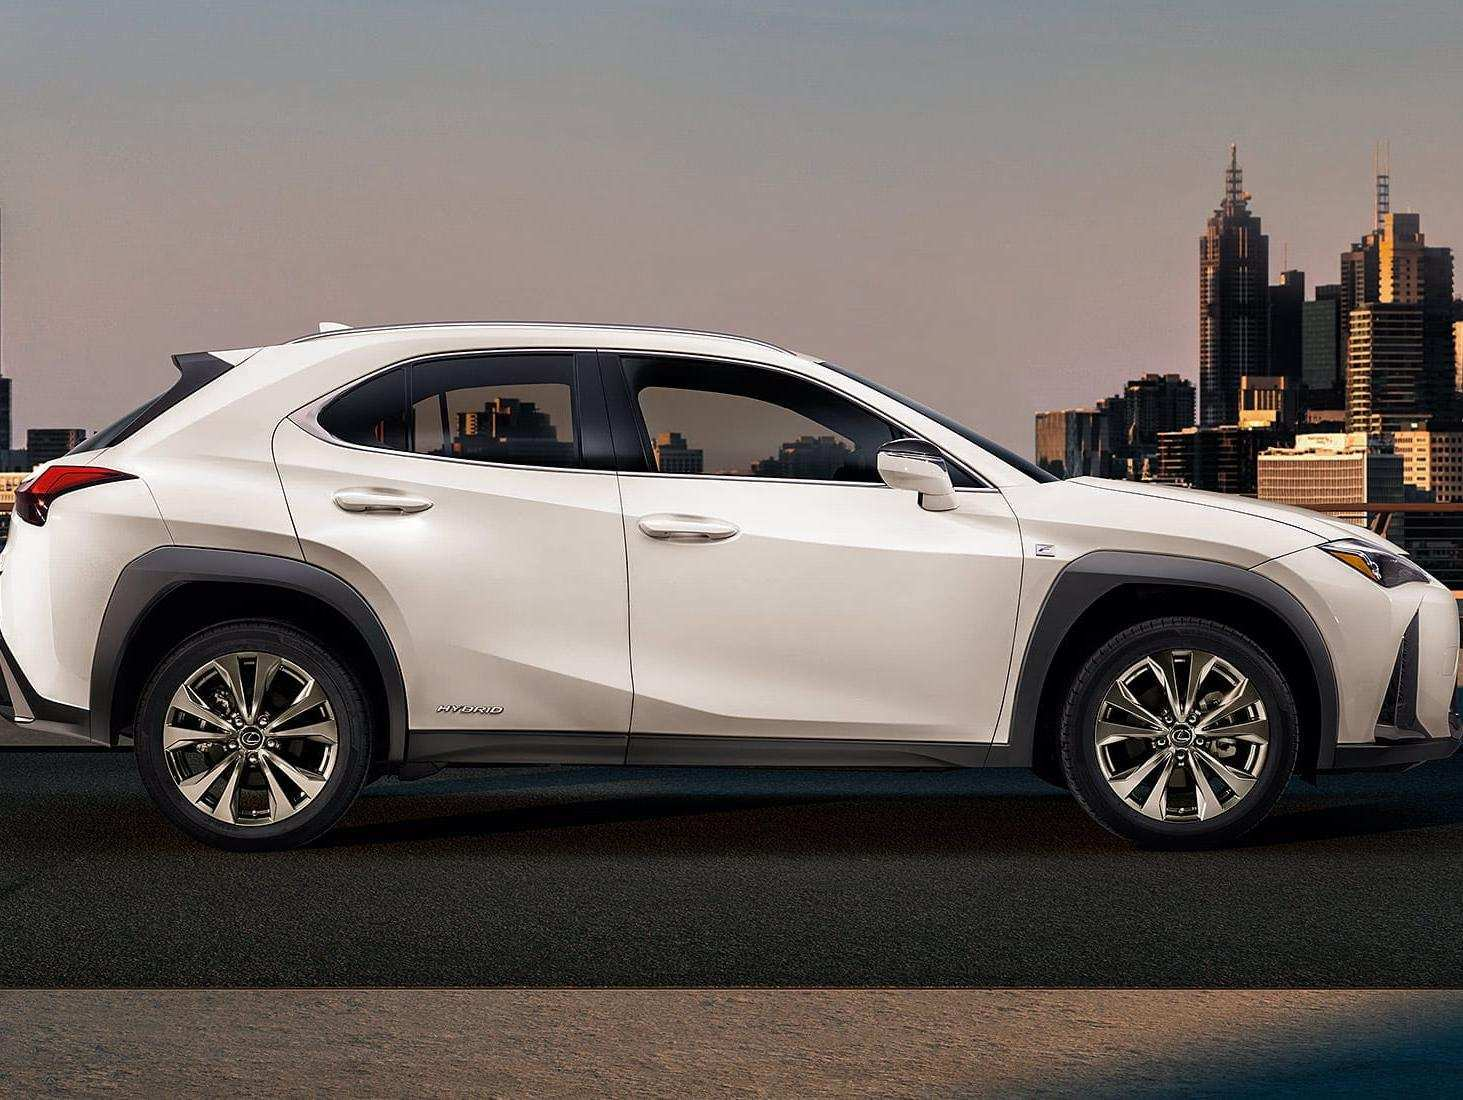 75 Great Lexus 2019 Ux Release Date Rumors for Lexus 2019 Ux Release Date